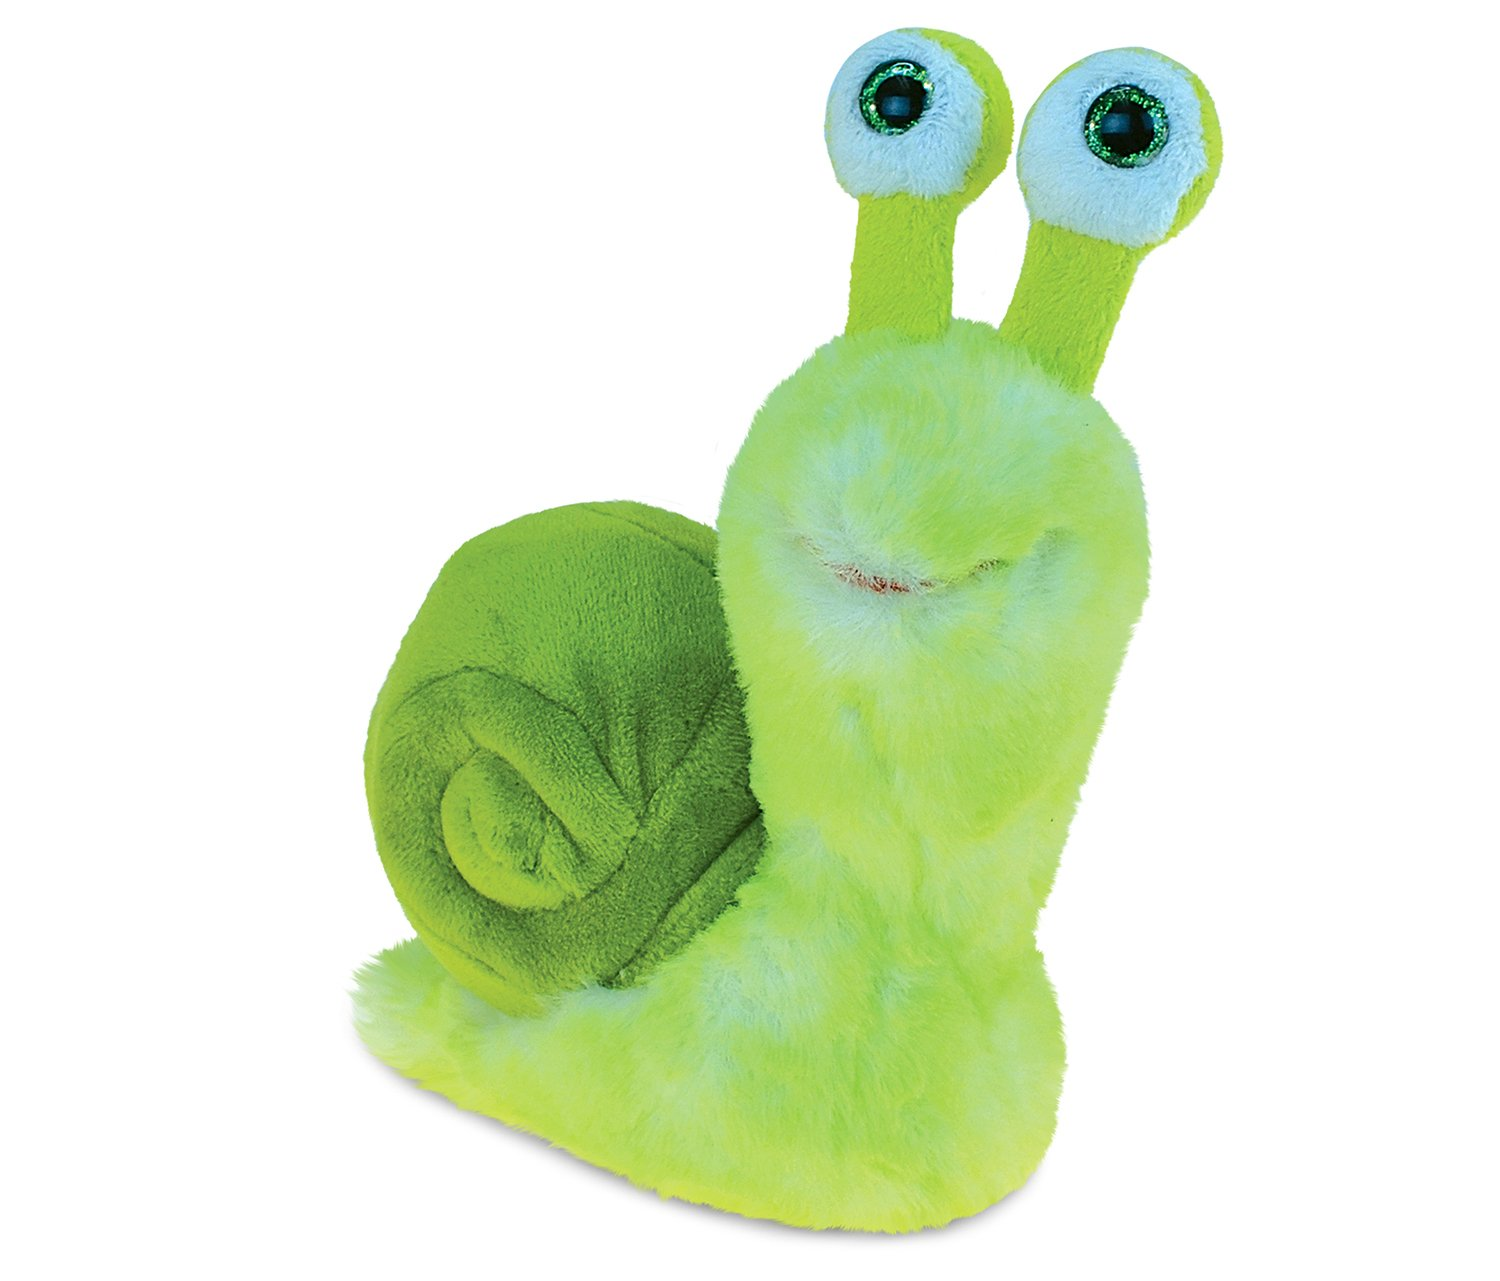 Puzzled Green Snail Unique Supersoft Stuffed Animal Cuddly Plush Toy - Bestfriend Insect 5.5 Inches Squishy Bed And Cars Plushie Pillow Toys For Baby Toddler Kids - Item 5334